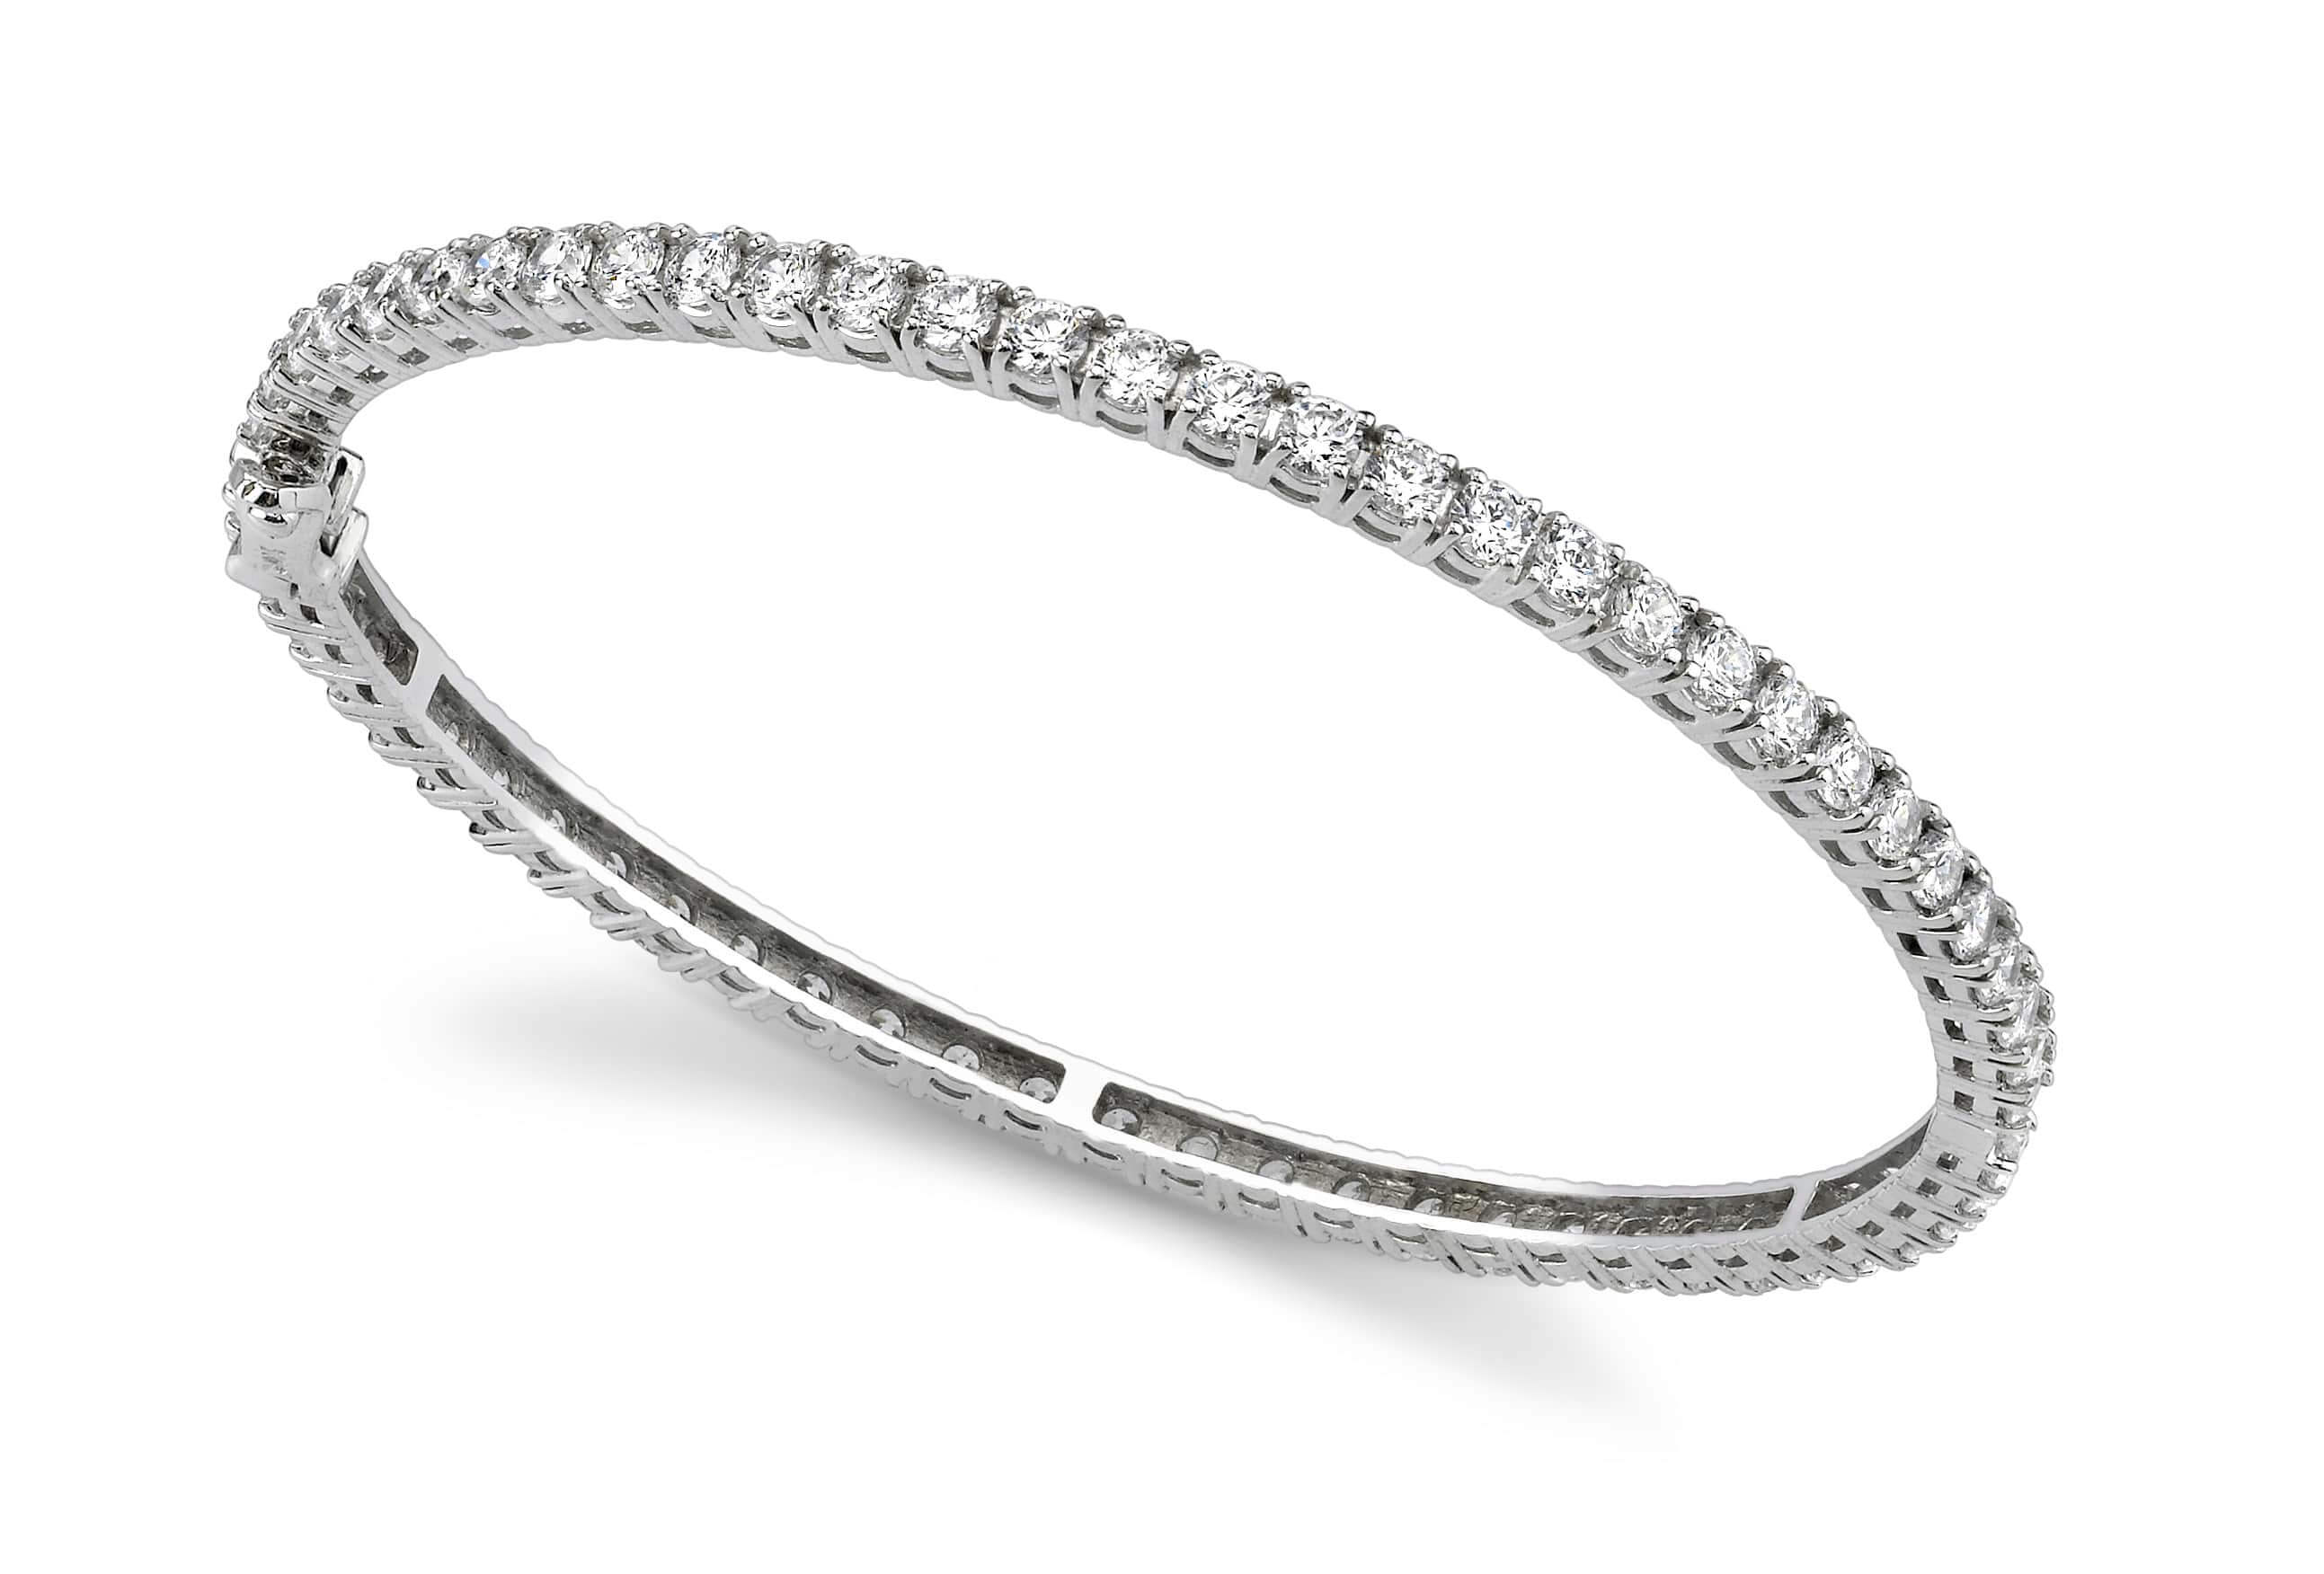 bracelet opulent bangles love diamond cartier jewelers pave bangle